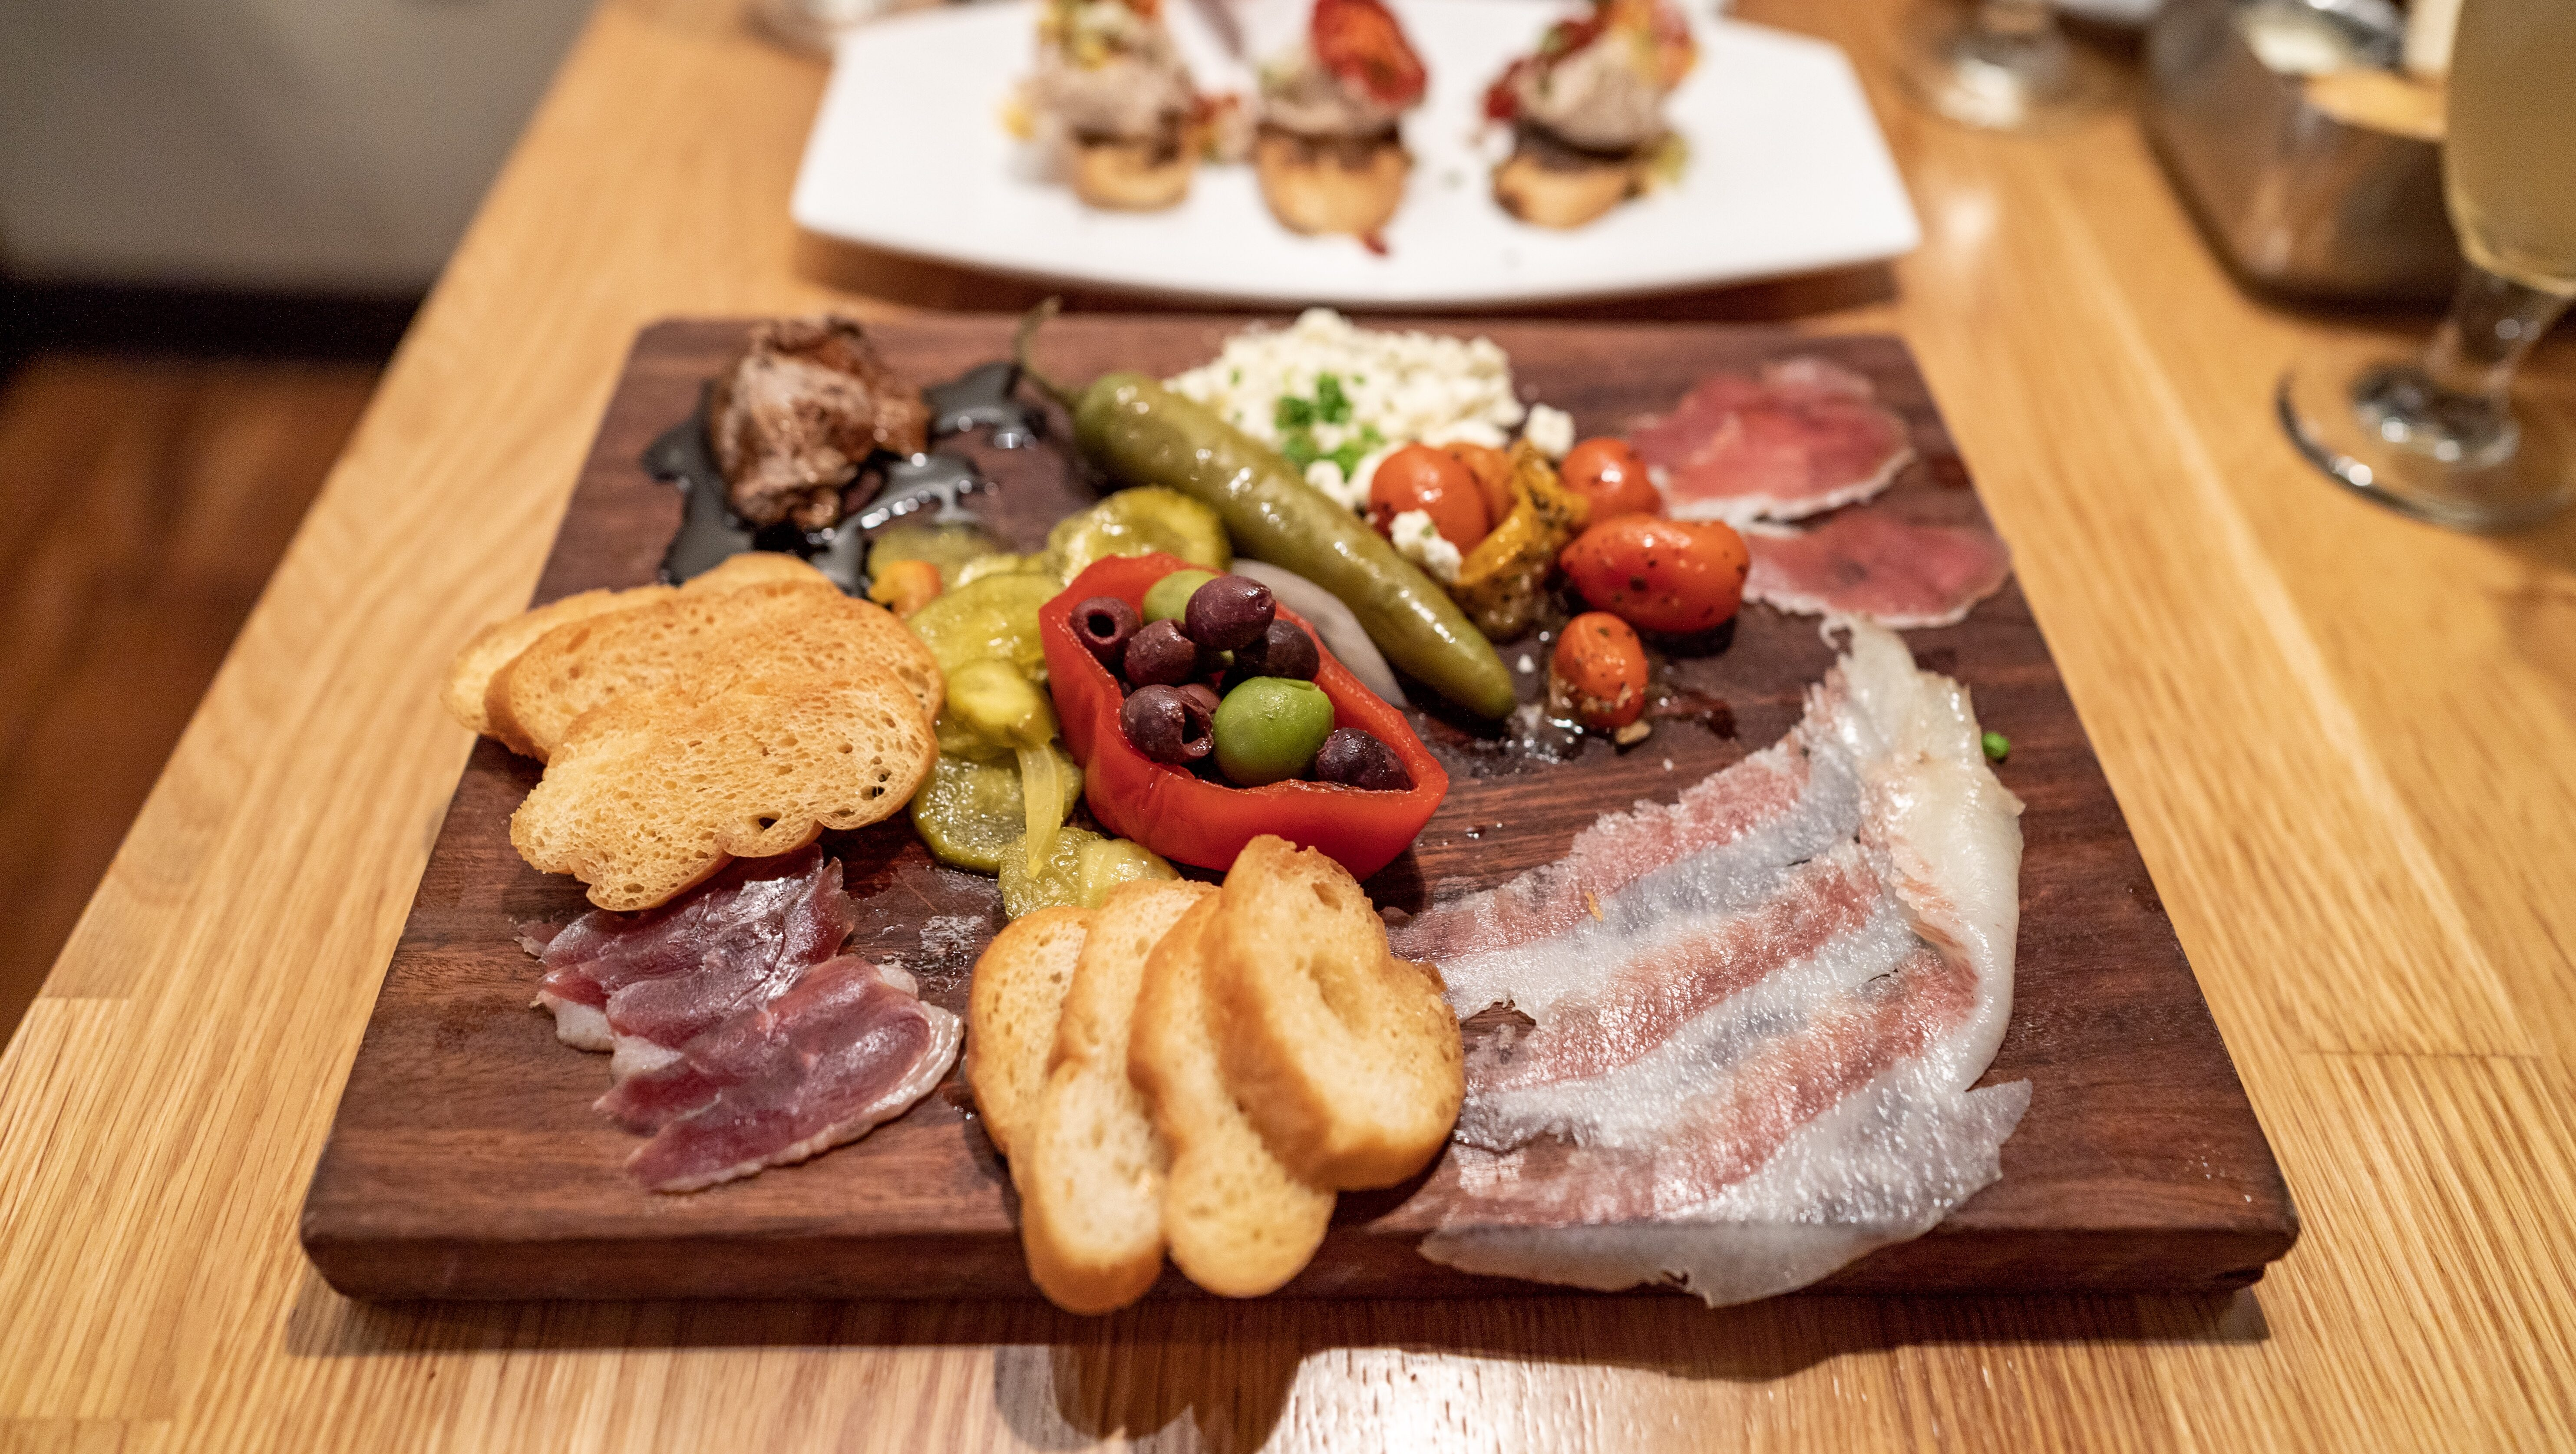 Charcuterie board at 12th Ave Grill